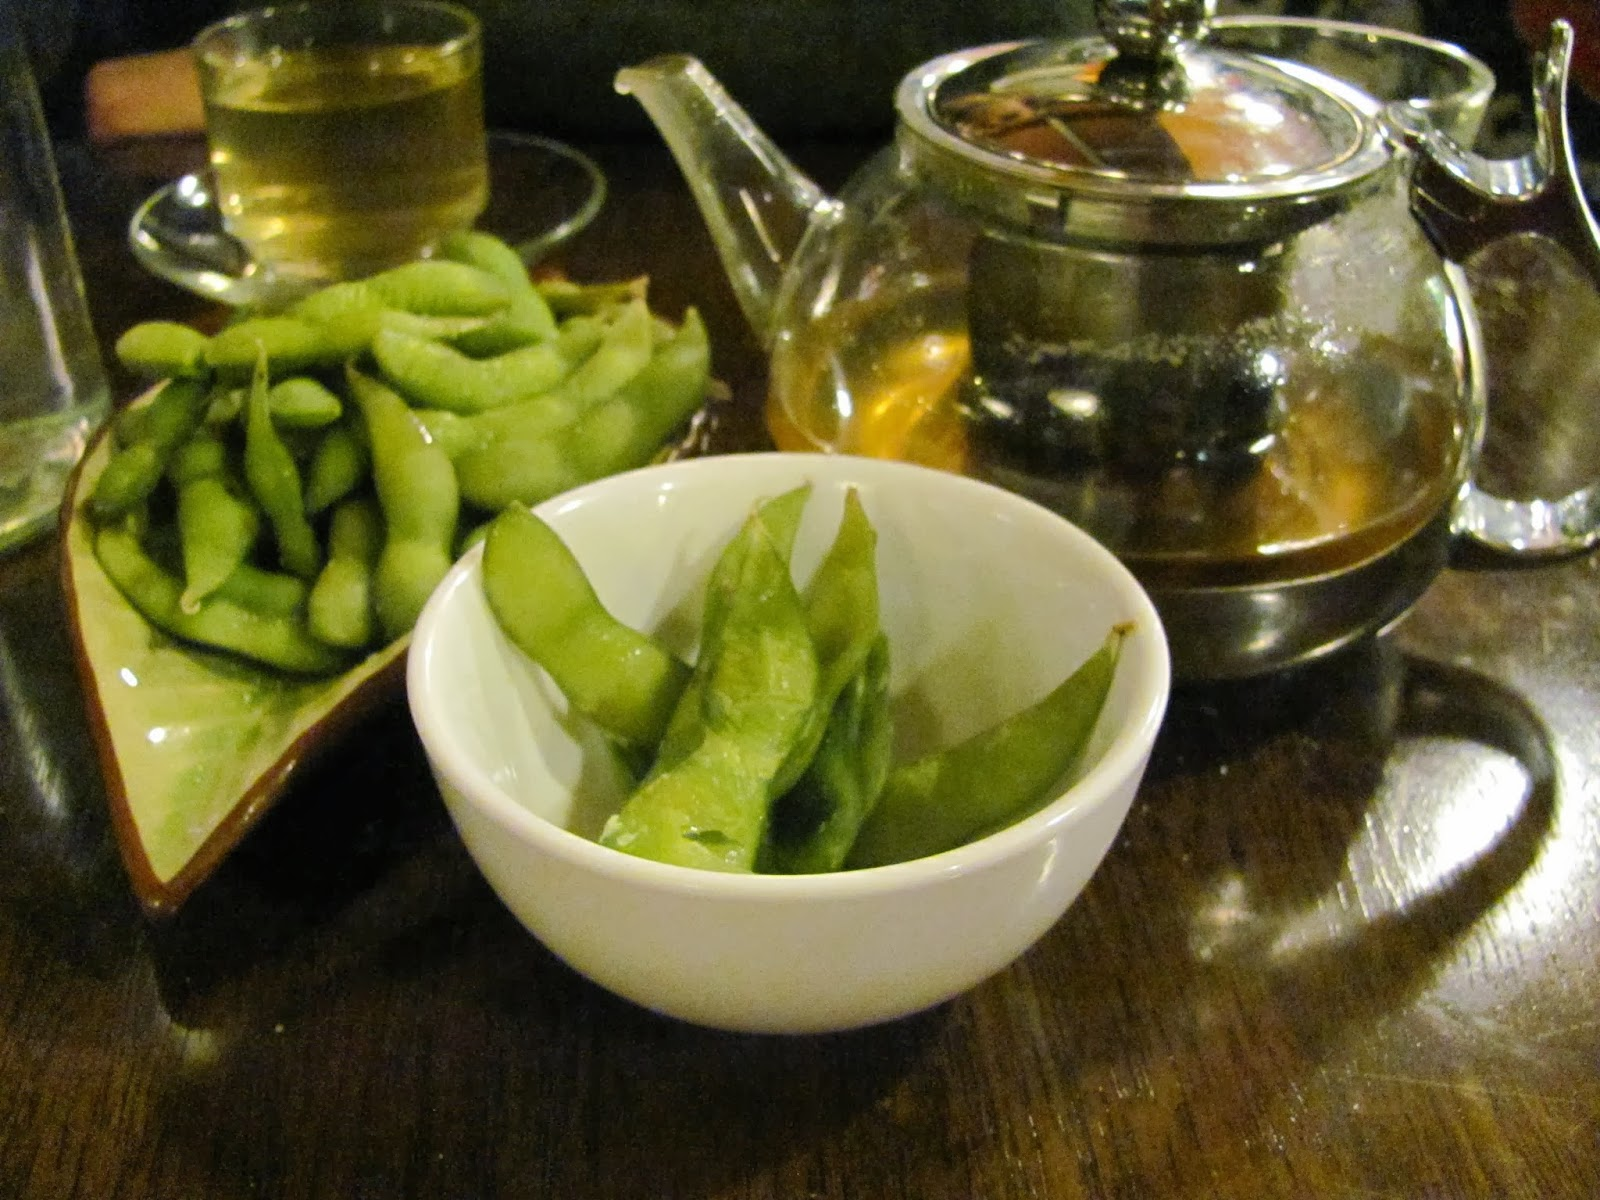 Edamame and Green Tea at J2 Grill and Sushi, Dublin, Ireland